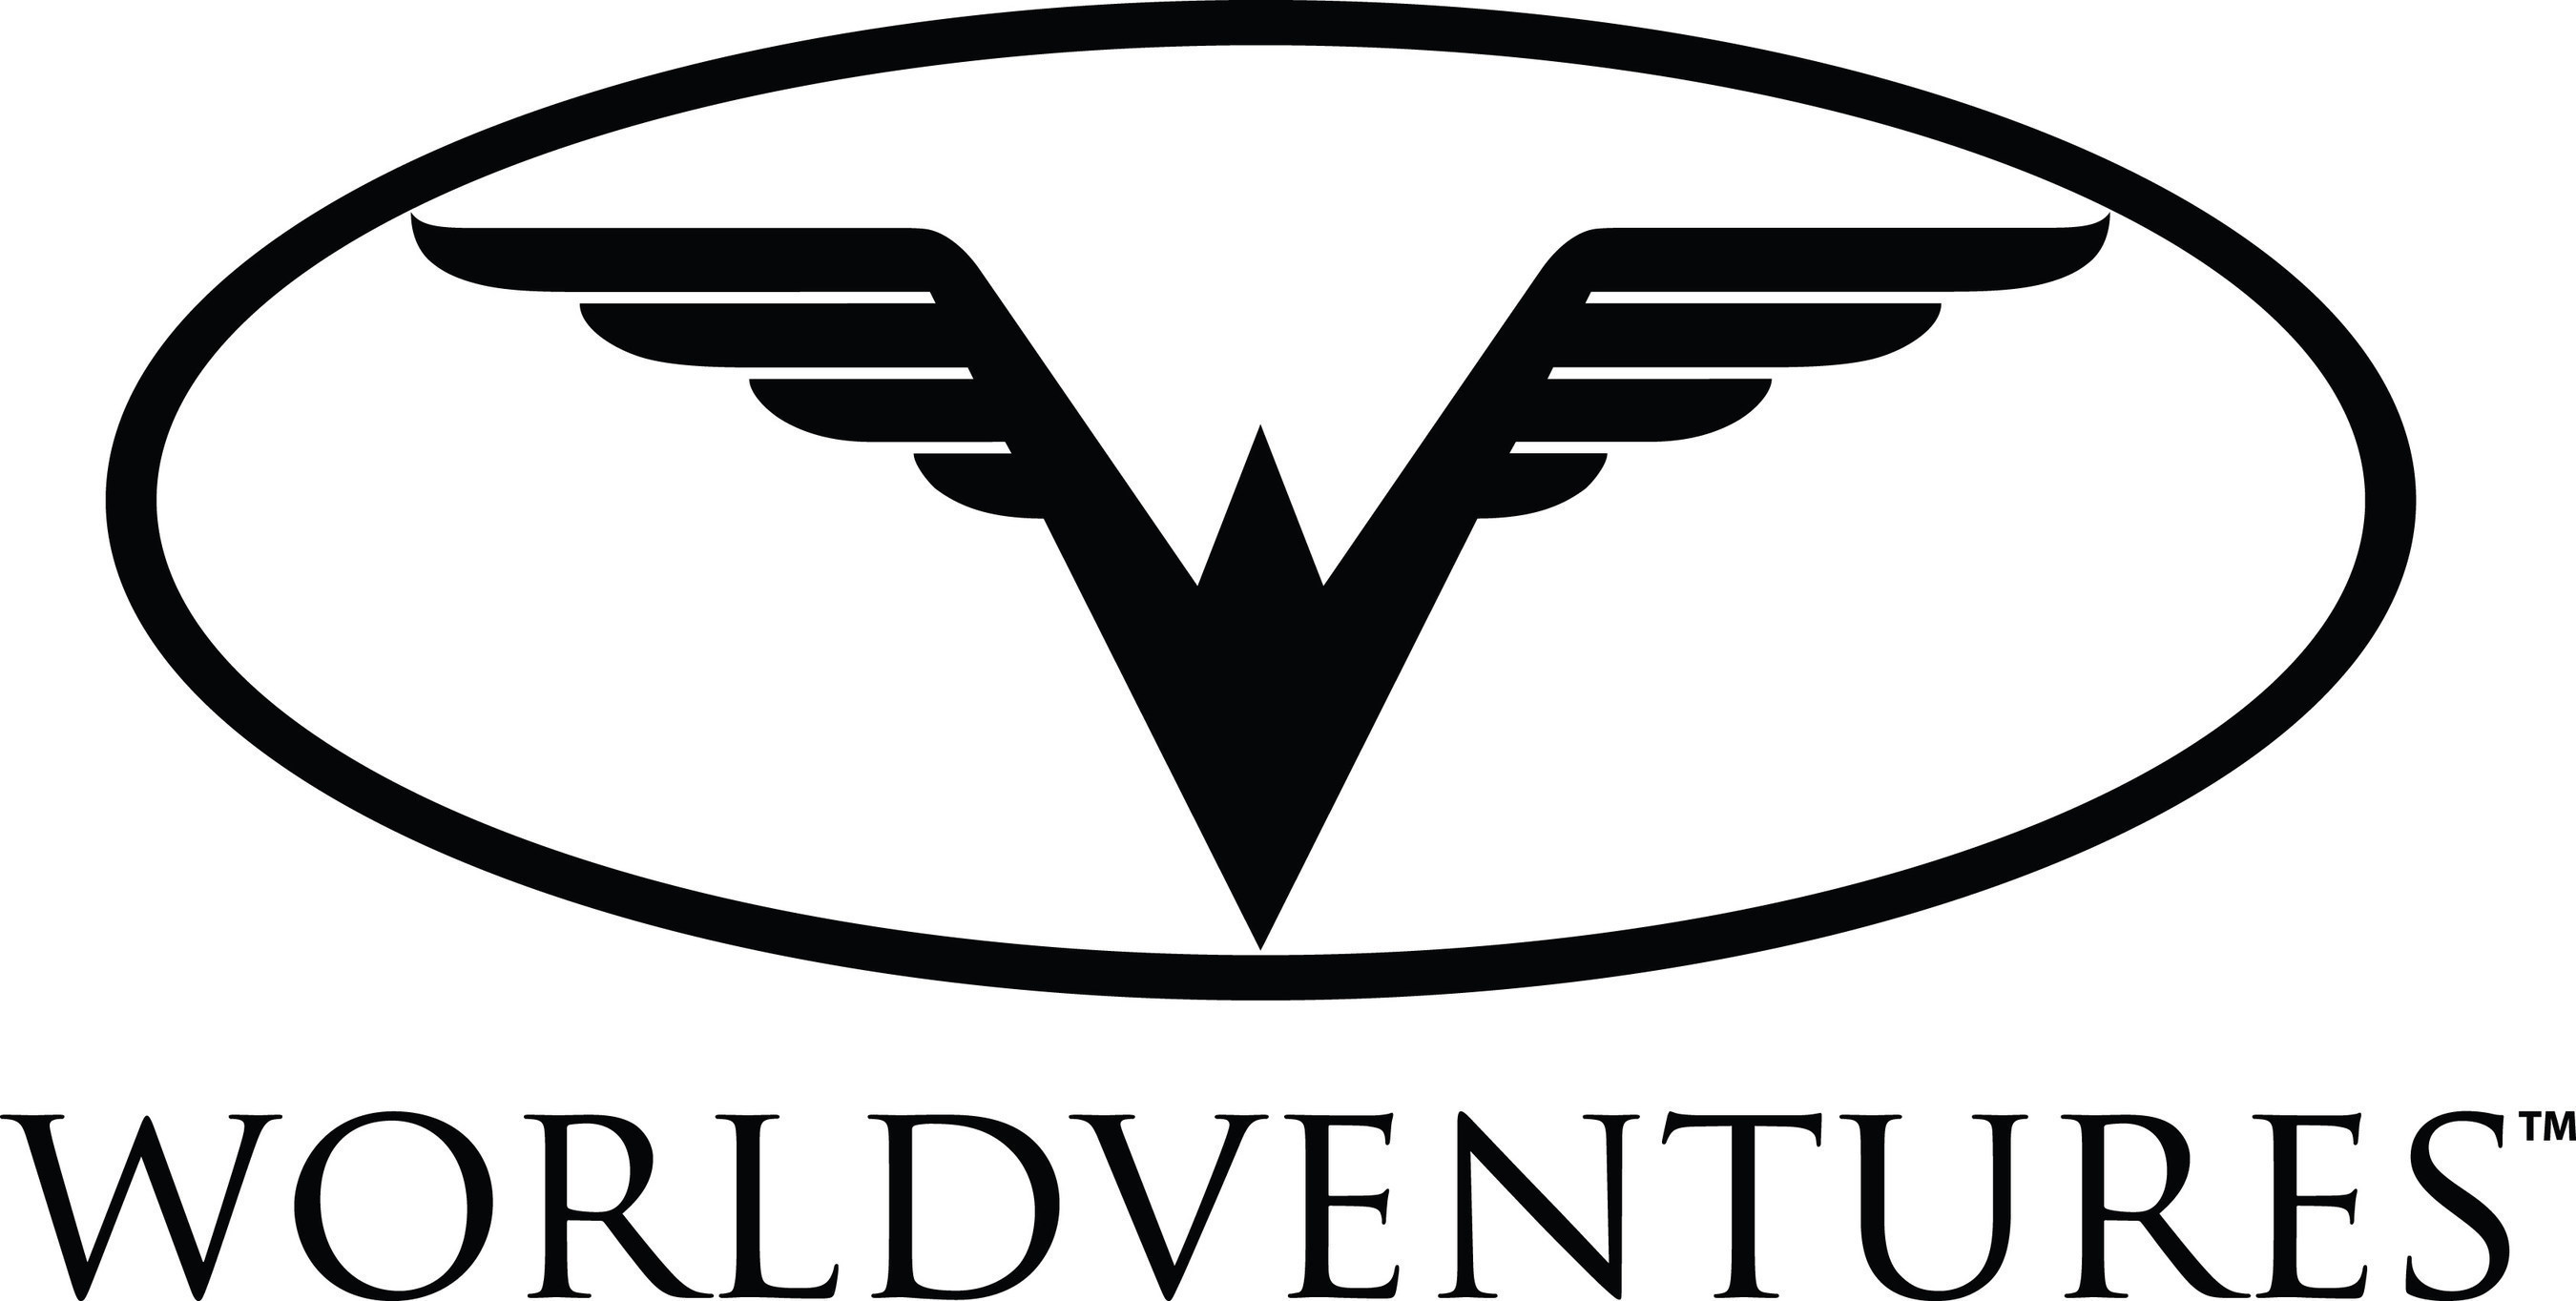 WorldVentures Once Again Recognized as an Inc. 5000